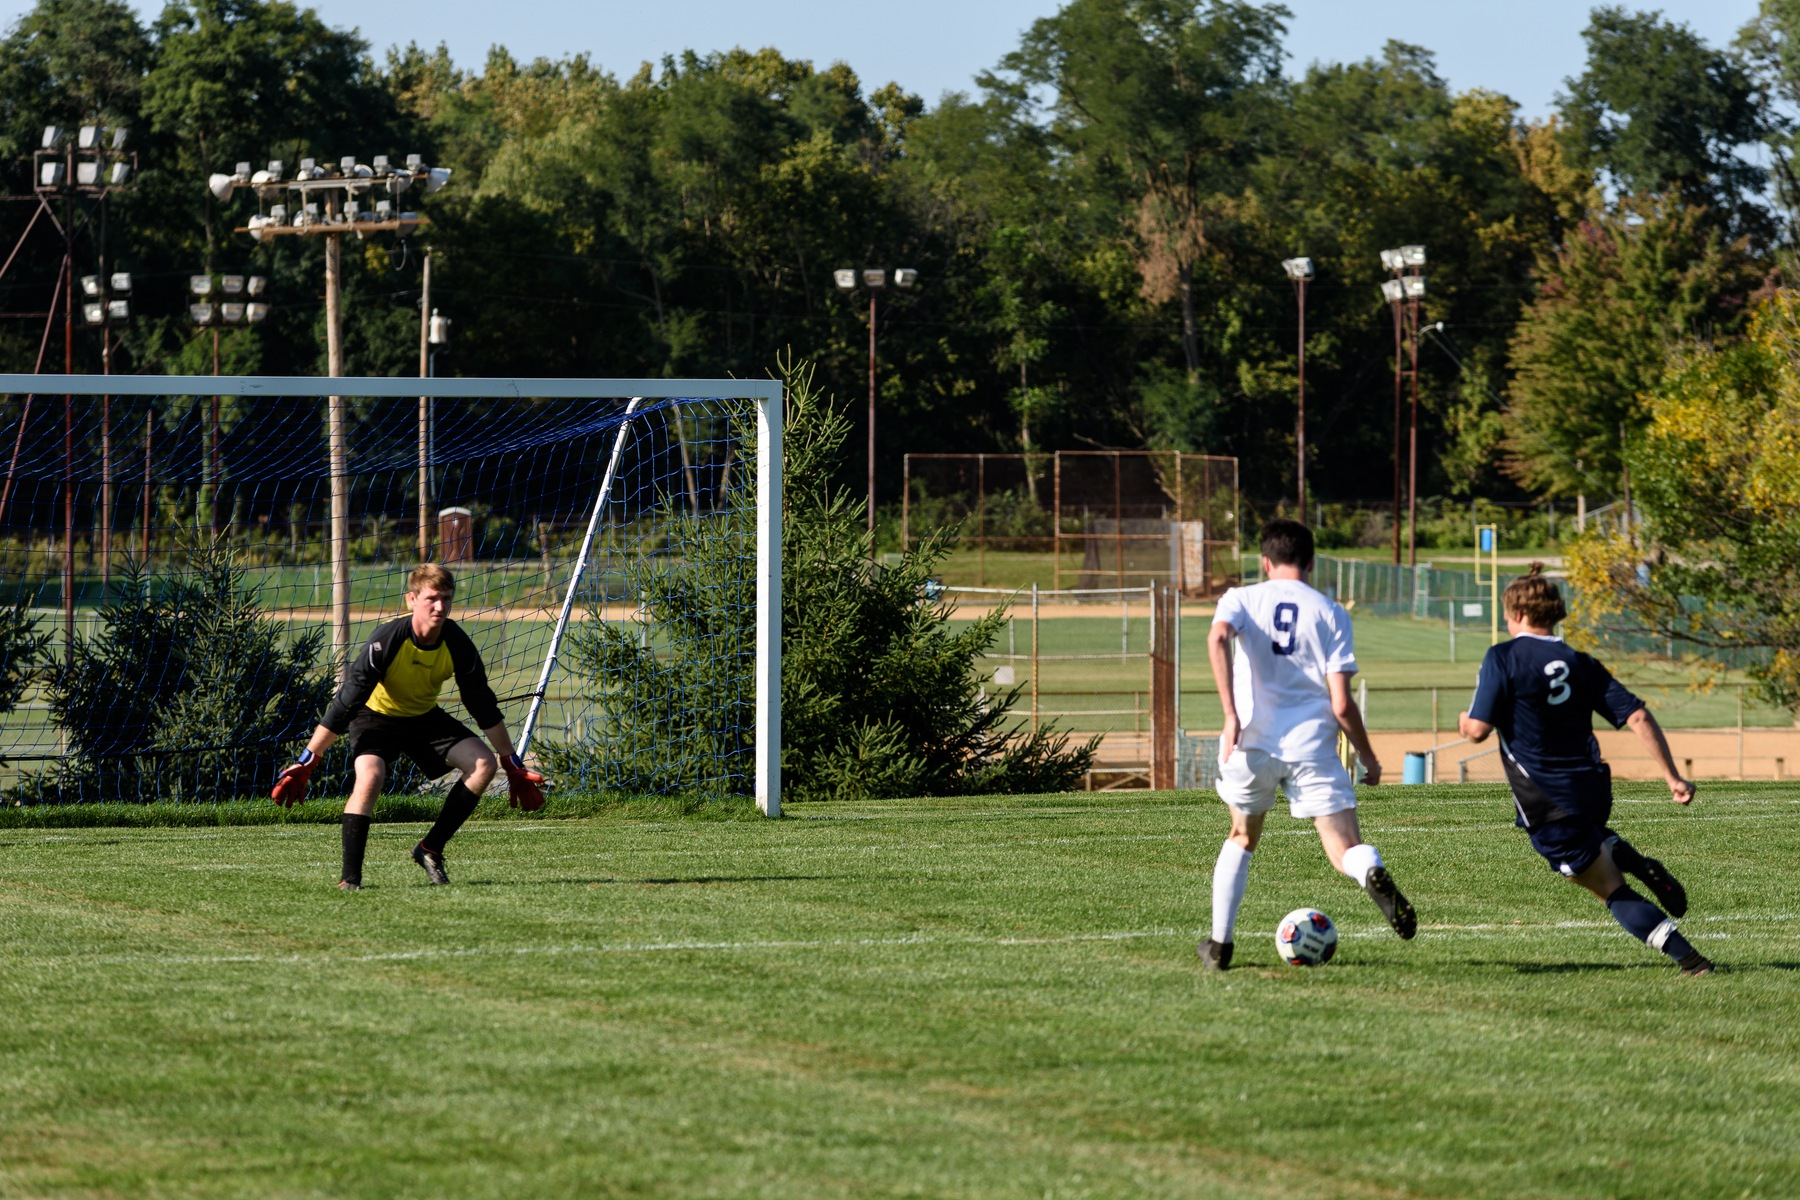 Carter Miller shooting the ball past the goalie.